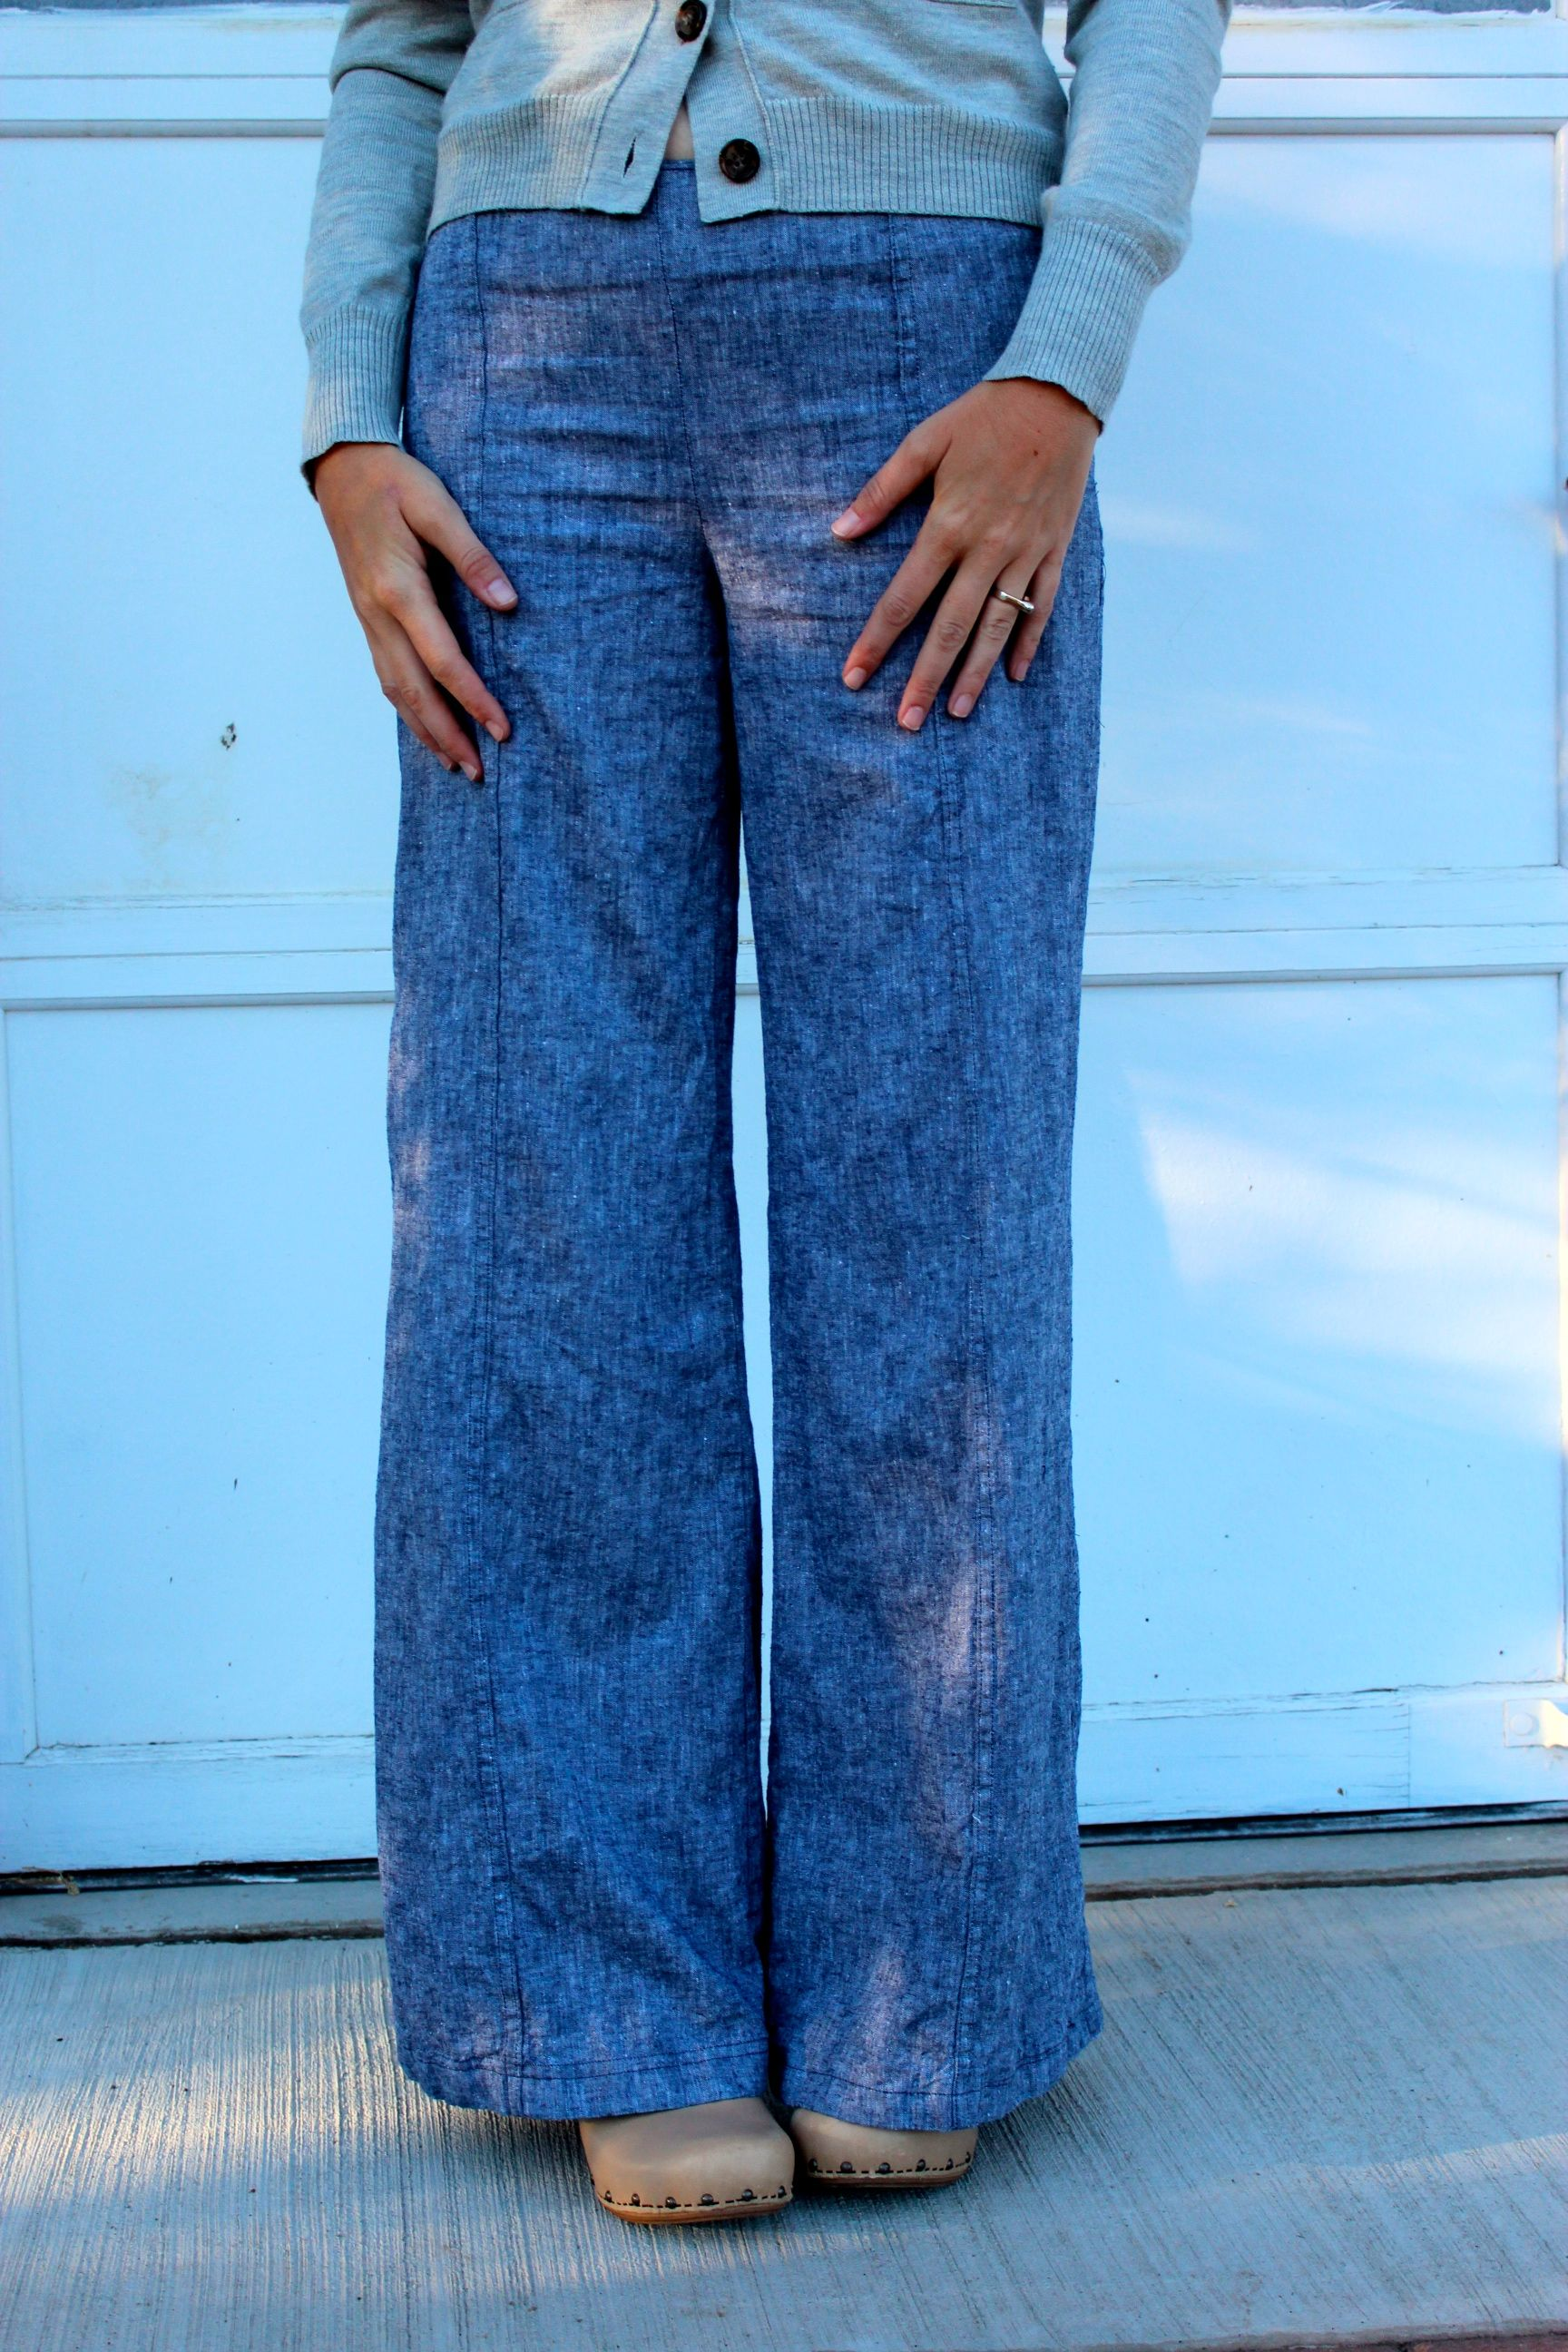 How To Sew Wide Leg Pants - Fat Pants